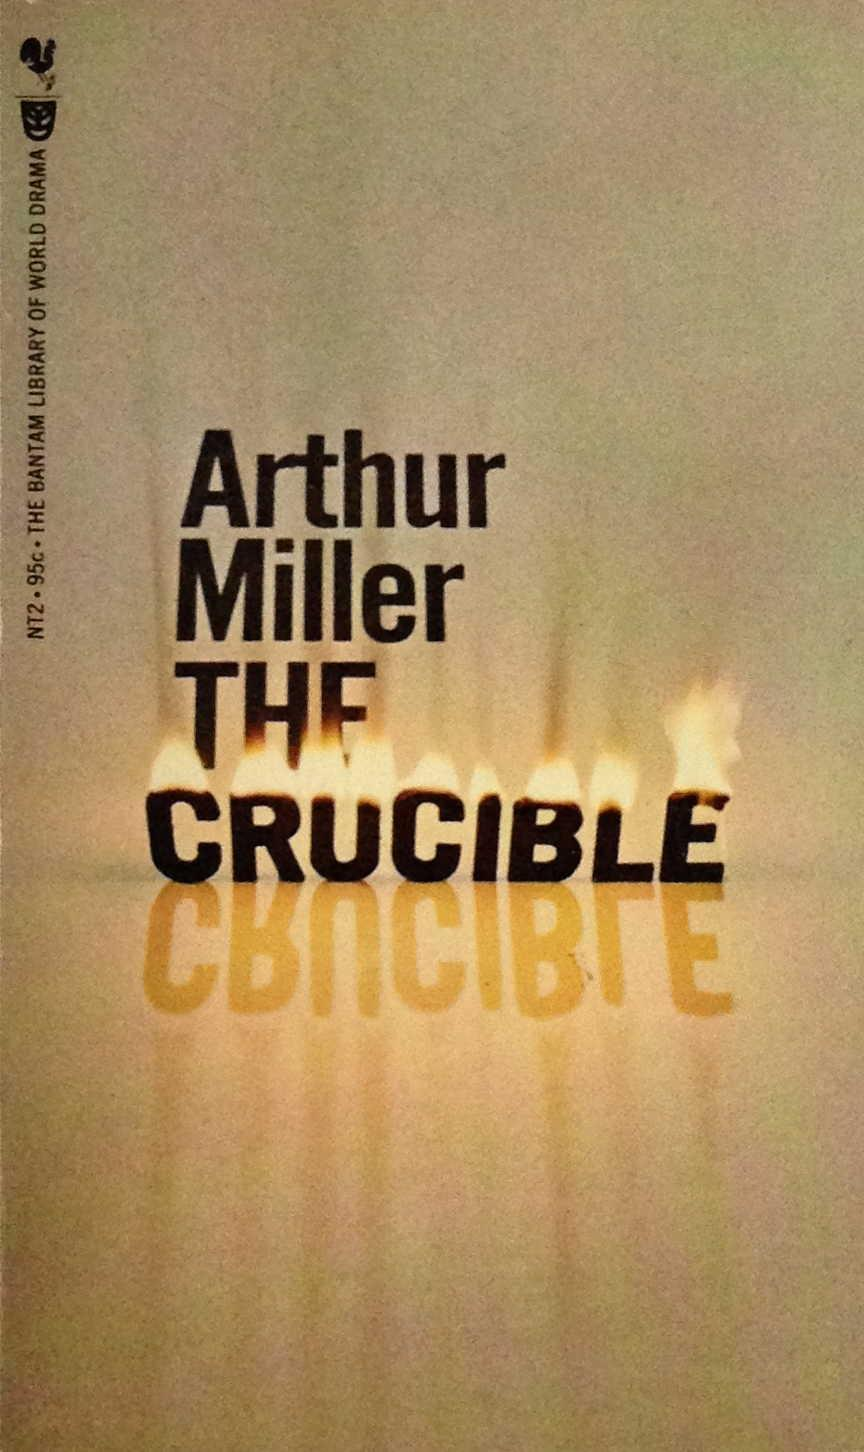 examples of envy in the crucible a play by arthur miller Arthur miller's play, the crucible, set in 1692, is based on the historical events surrounding the witch trials in salem this essay deals with the failure of the justice system in salem, massachusetts.